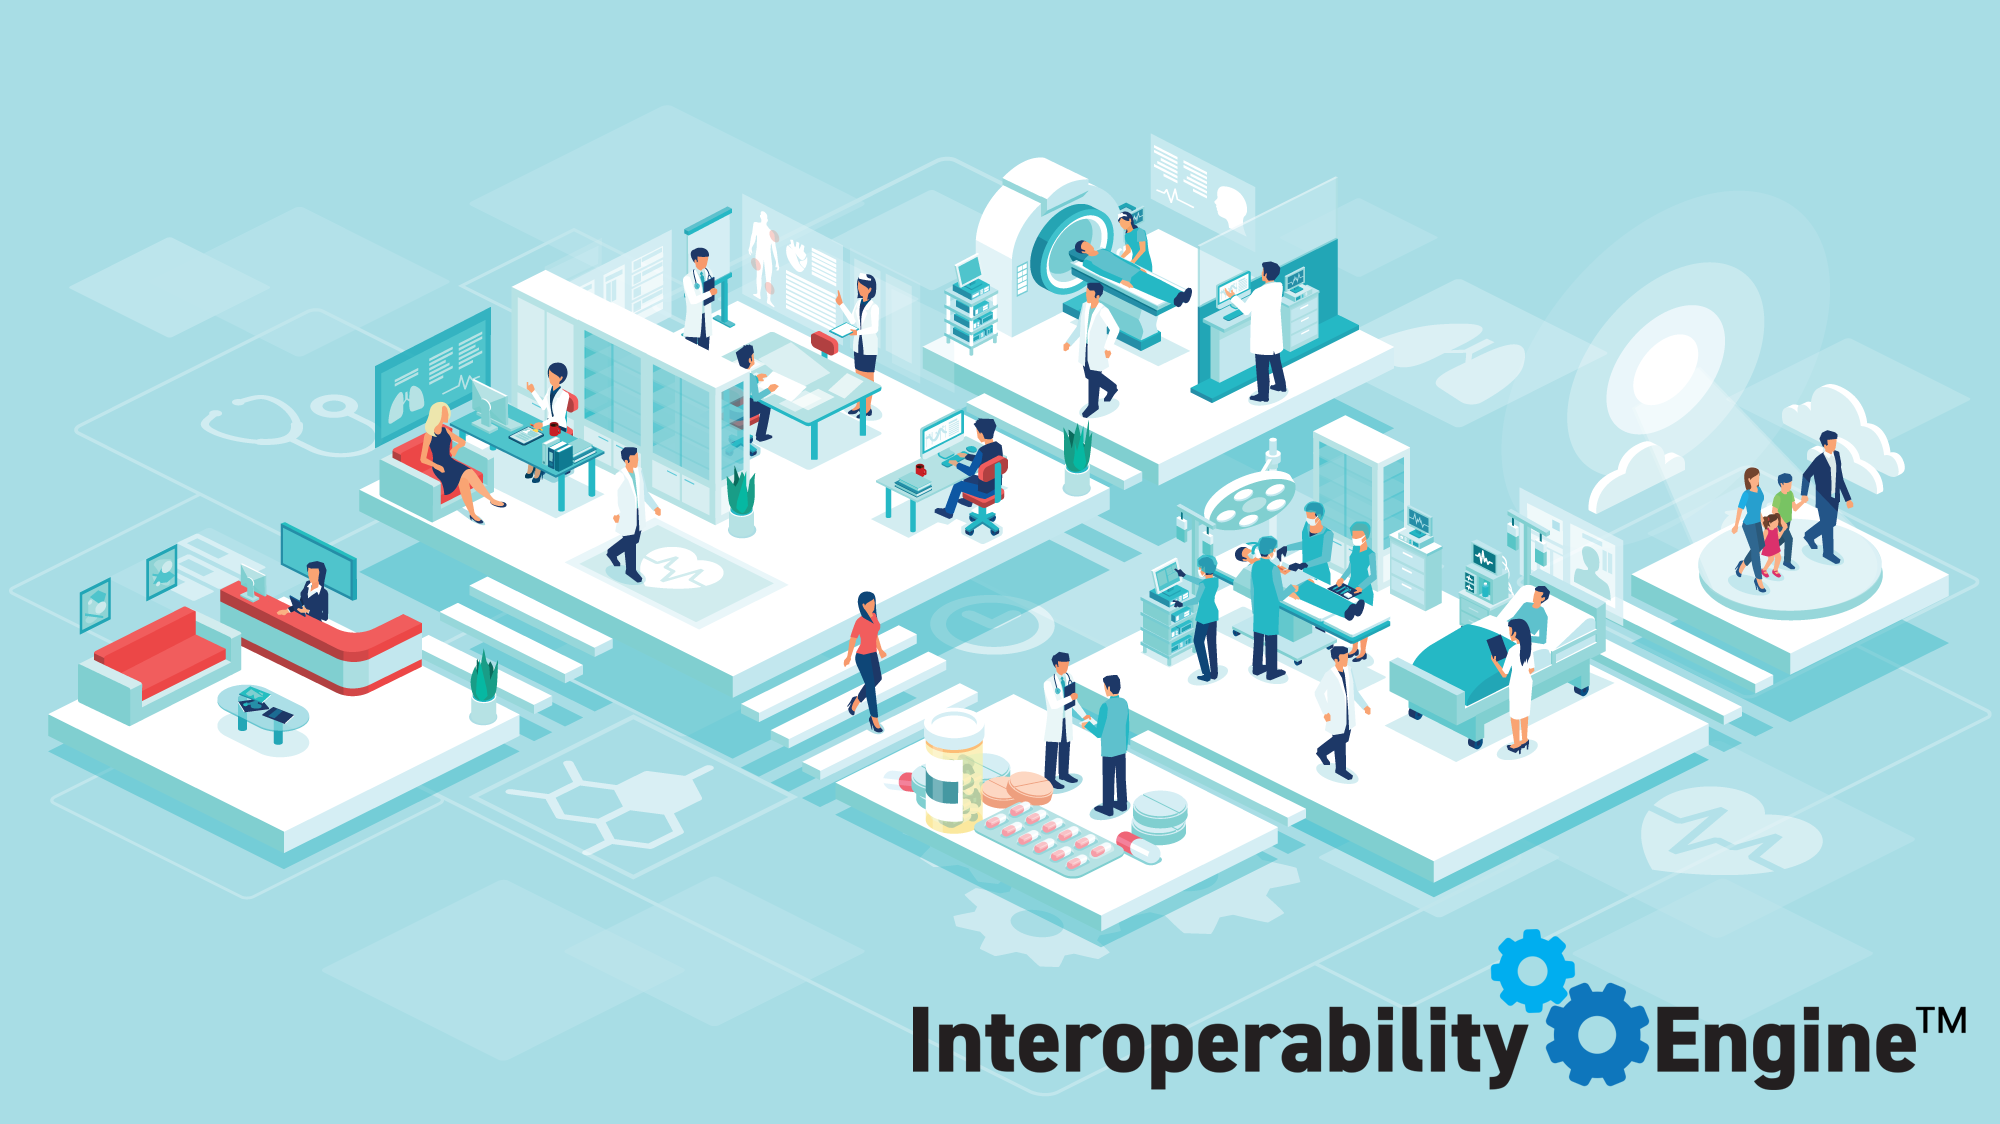 Interoperability Engine